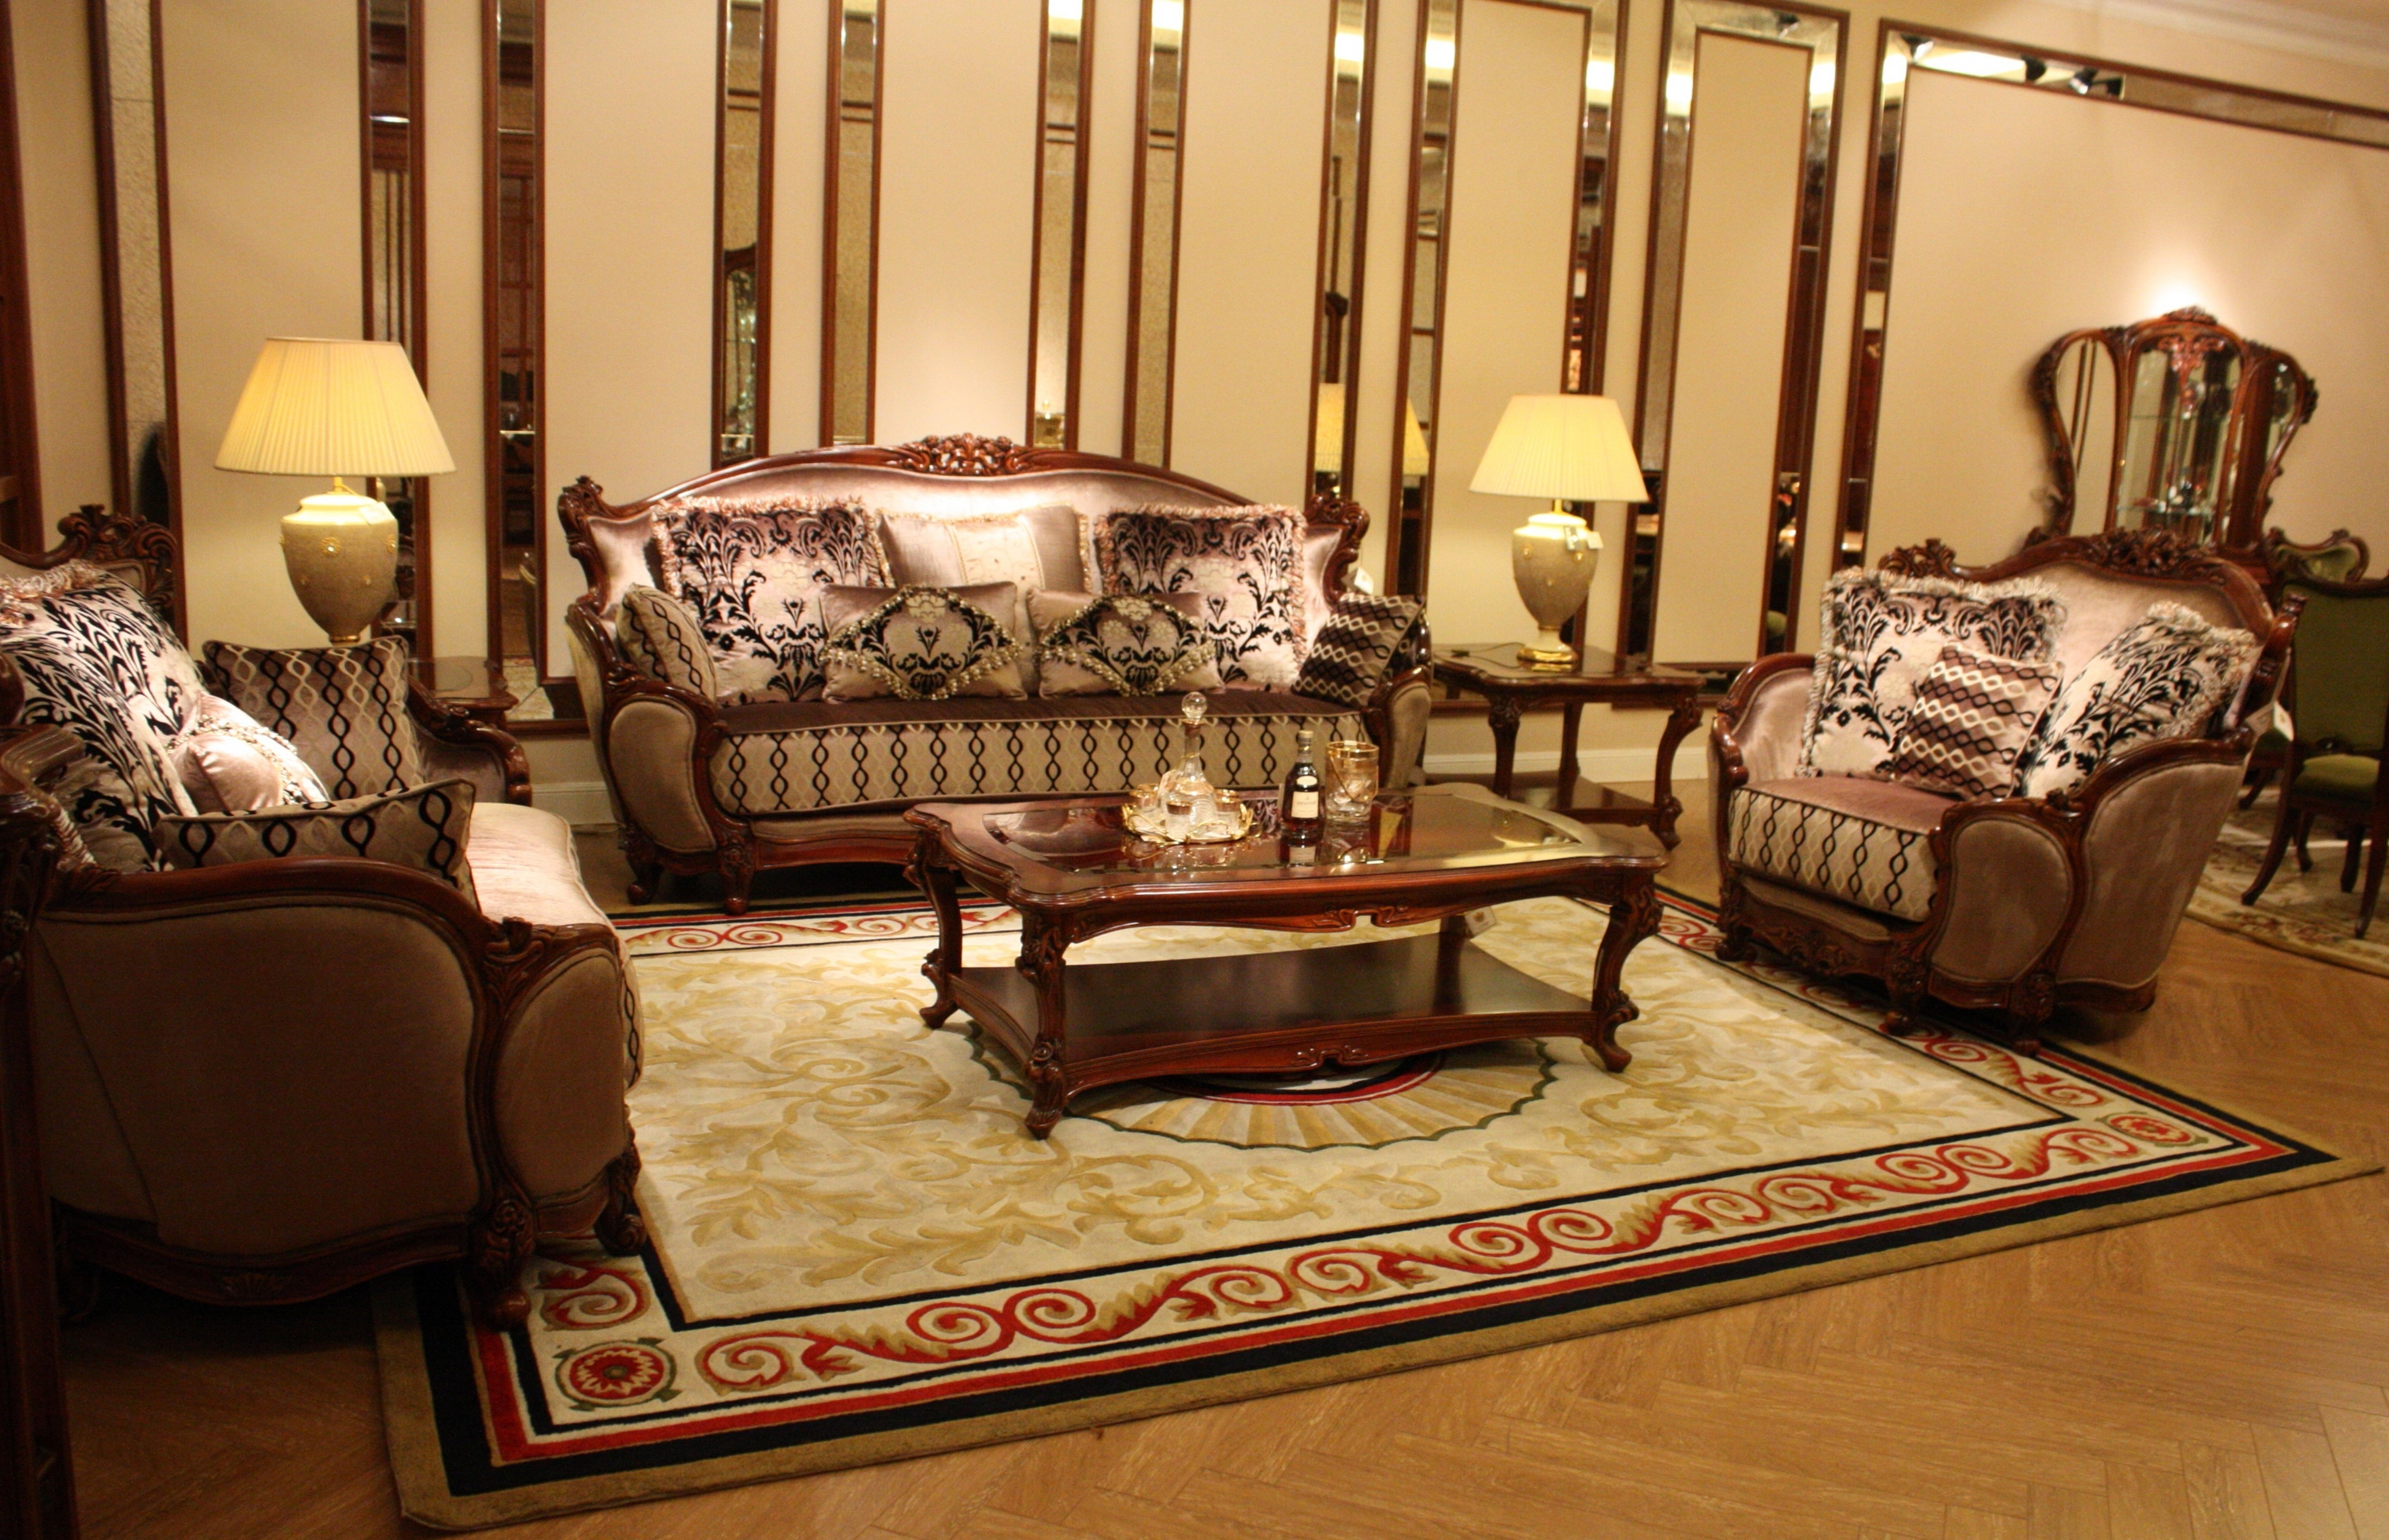 Rustic Western Living Room Sets Living Room Ideas regarding Western Living Room Sets